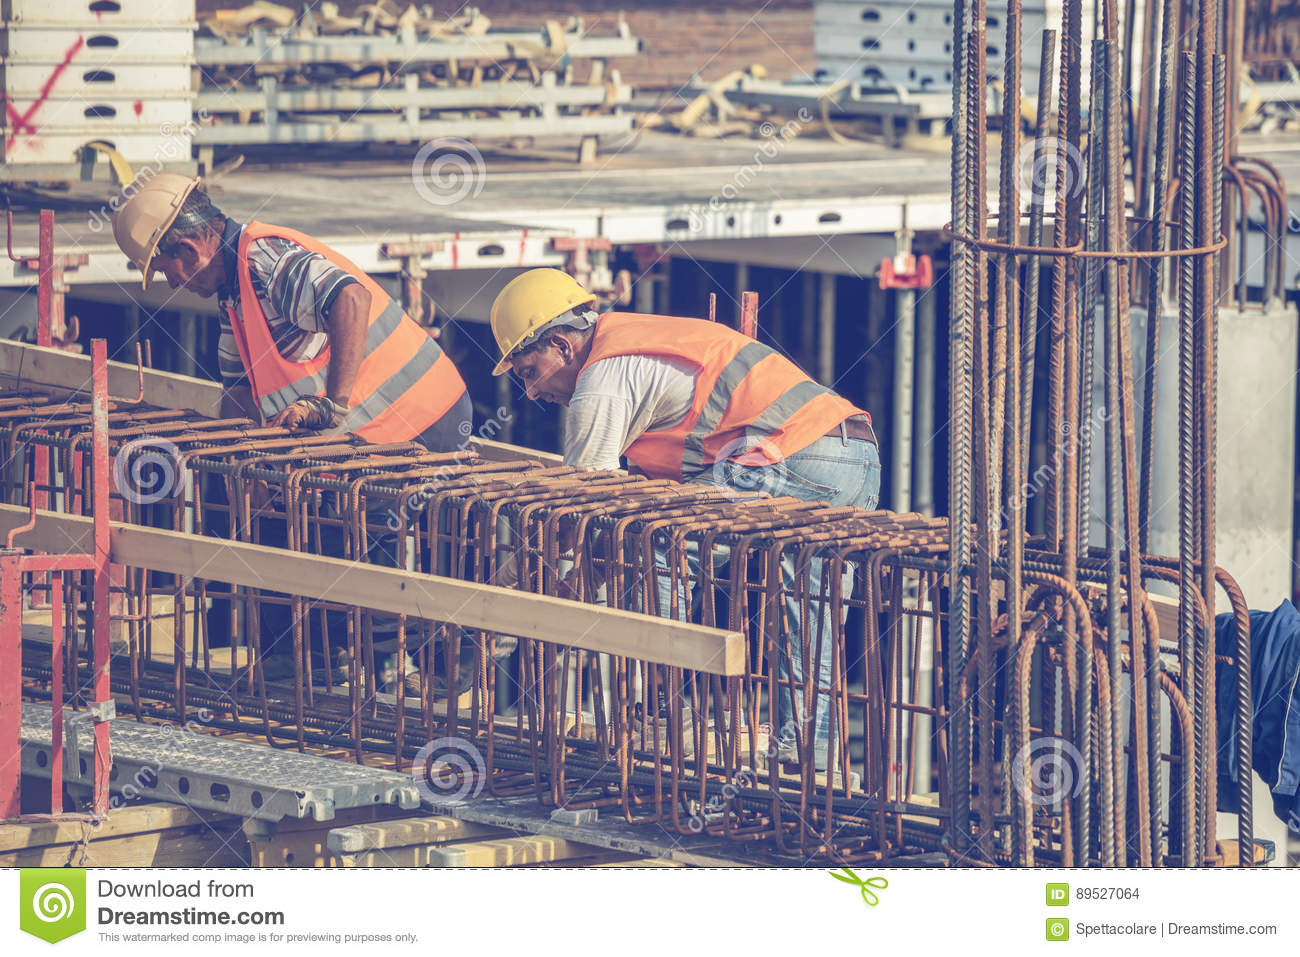 Workers Ties Reinforcement Bar 3 Editorial Stock Image - Image of